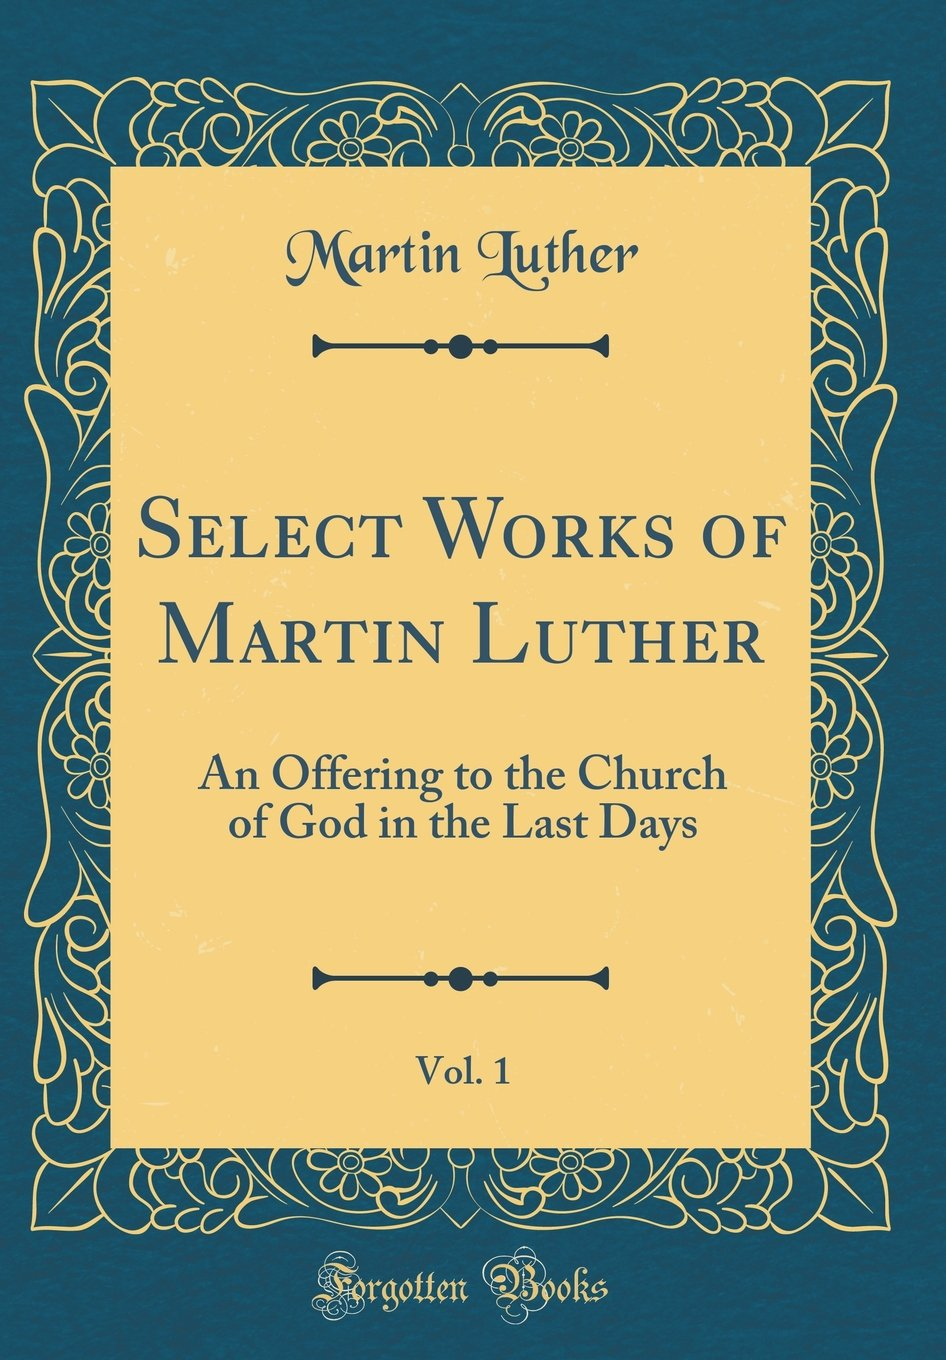 Select Works of Martin Luther, Vol. 1: An Offering to the Church of God in the Last Days (Classic Reprint) pdf epub